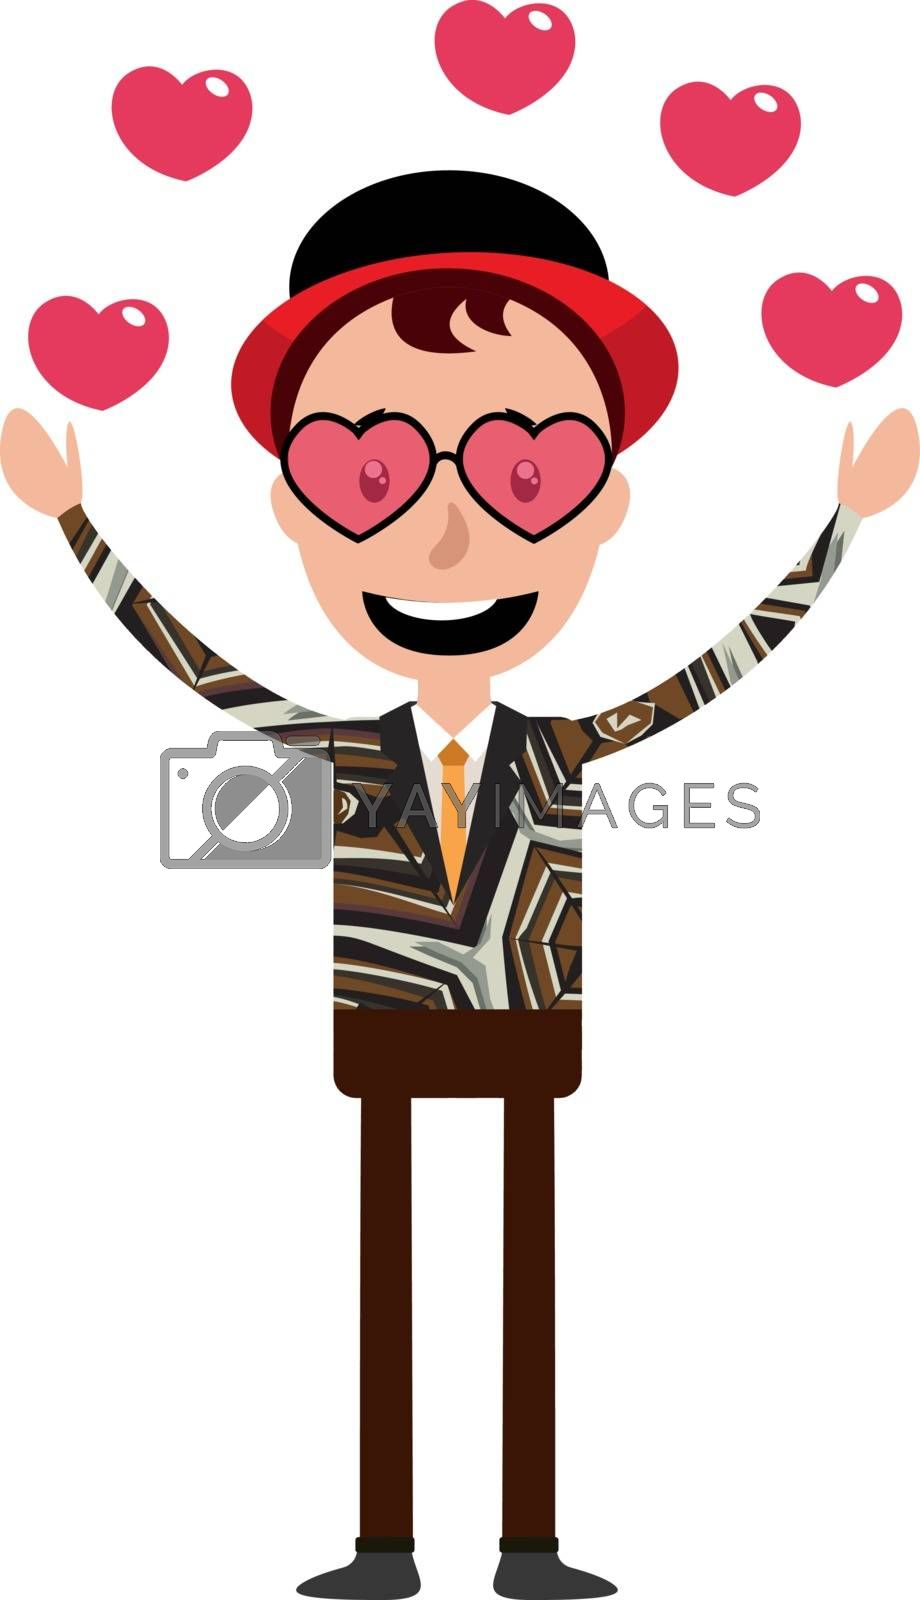 Royalty free image of Cartoon funny young man in love illustration vector on white bac by Morphart